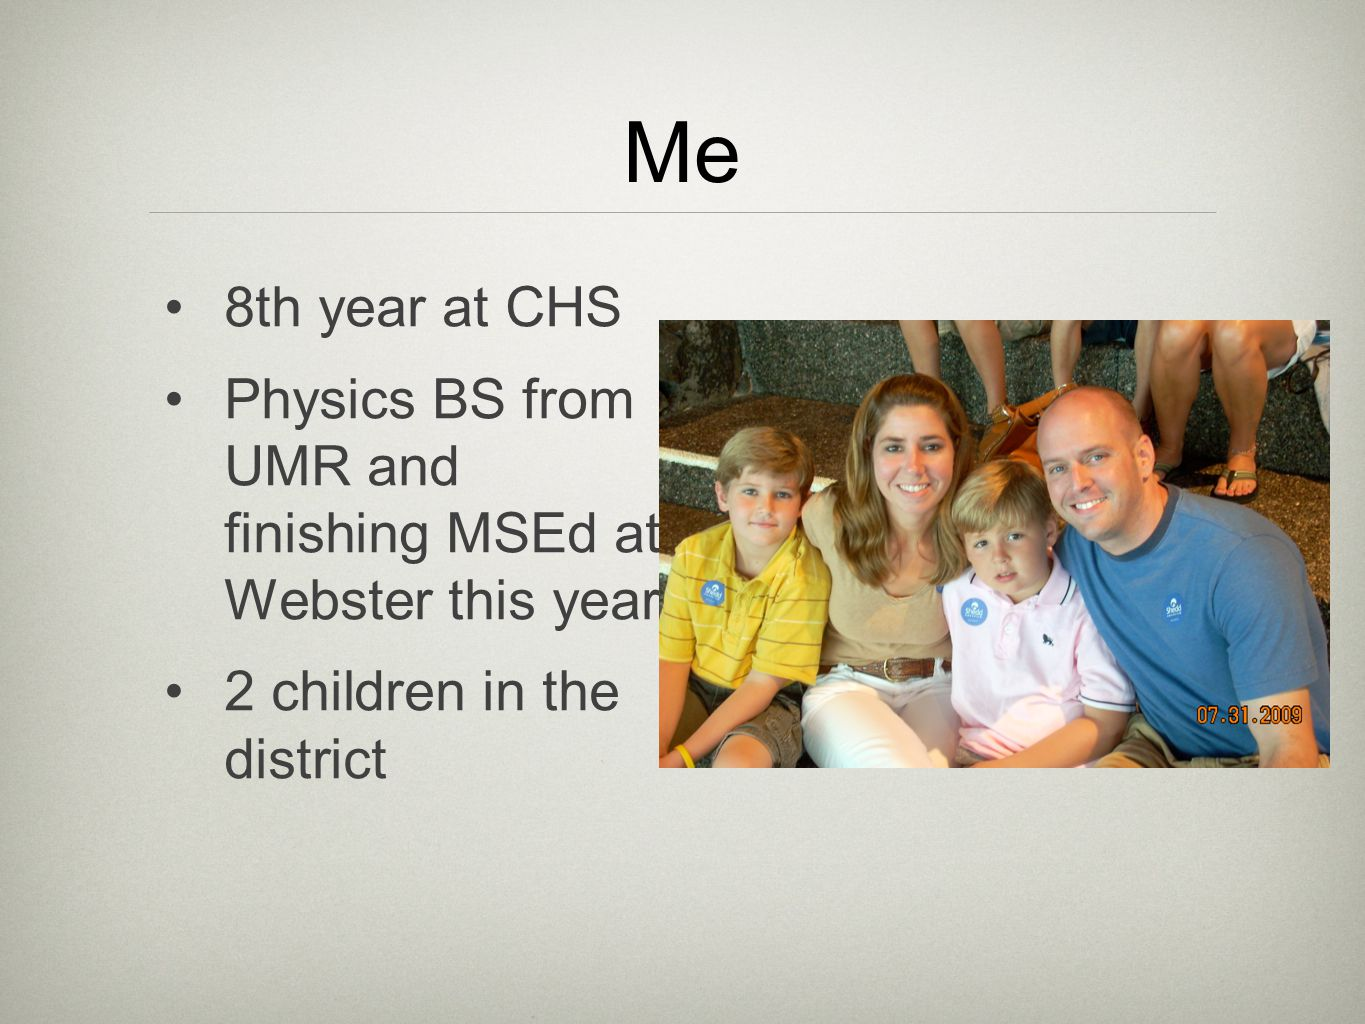 Me 8th year at CHS Physics BS from UMR and finishing MSEd at Webster this year 2 children in the district